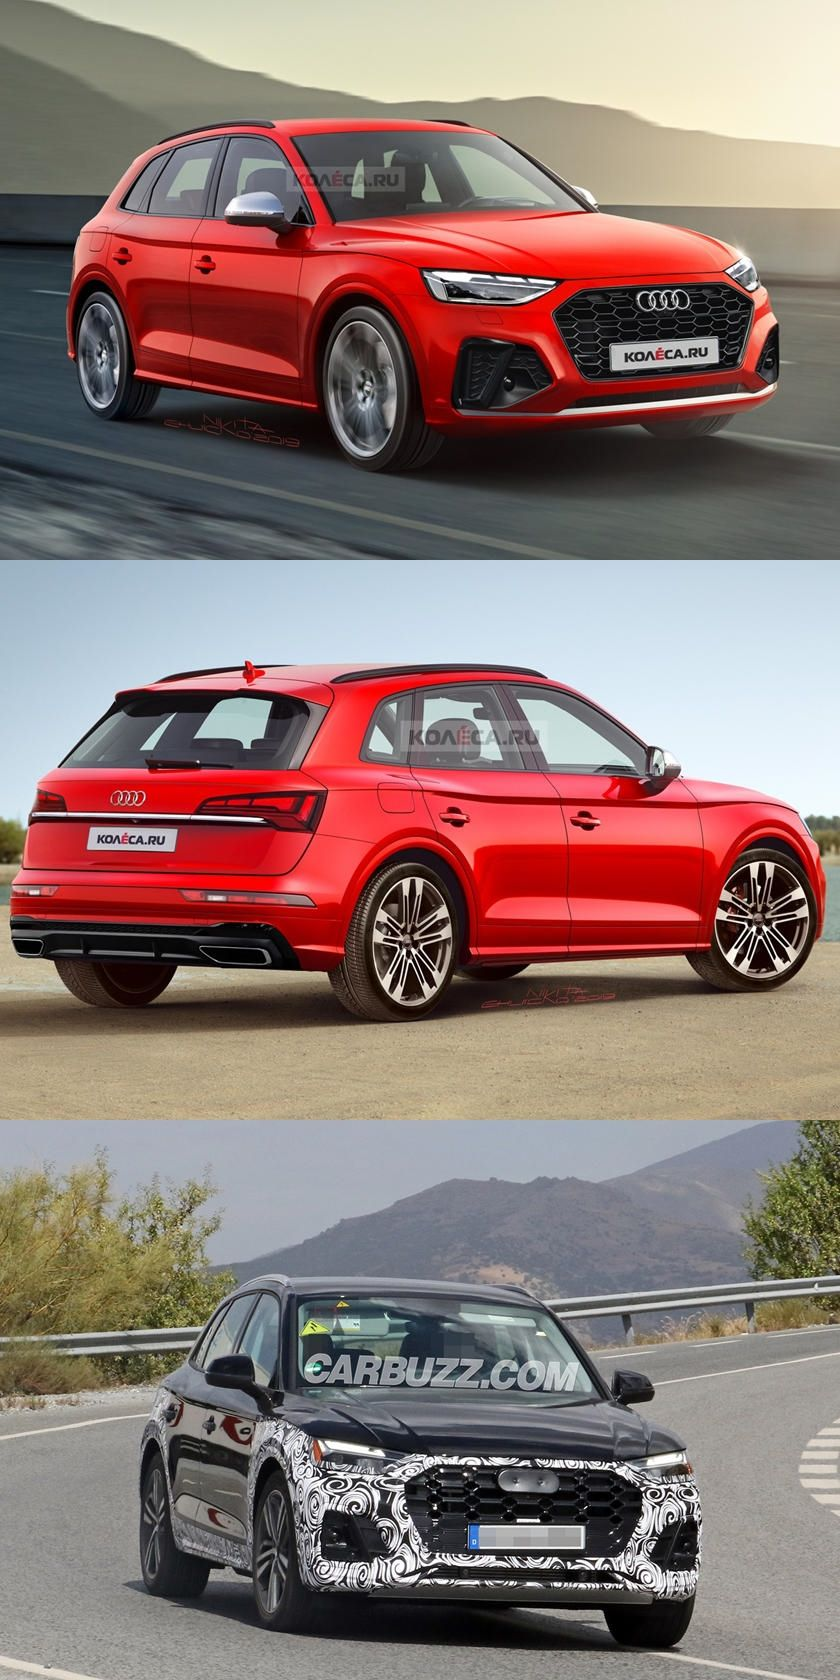 Looks Like Audi Wants To Join The Coupe Crossover Craze The Upcoming Q5 Facelift Will Reportedly Spawn A New Sportback Version In 2020 Audi Coupe New Suv